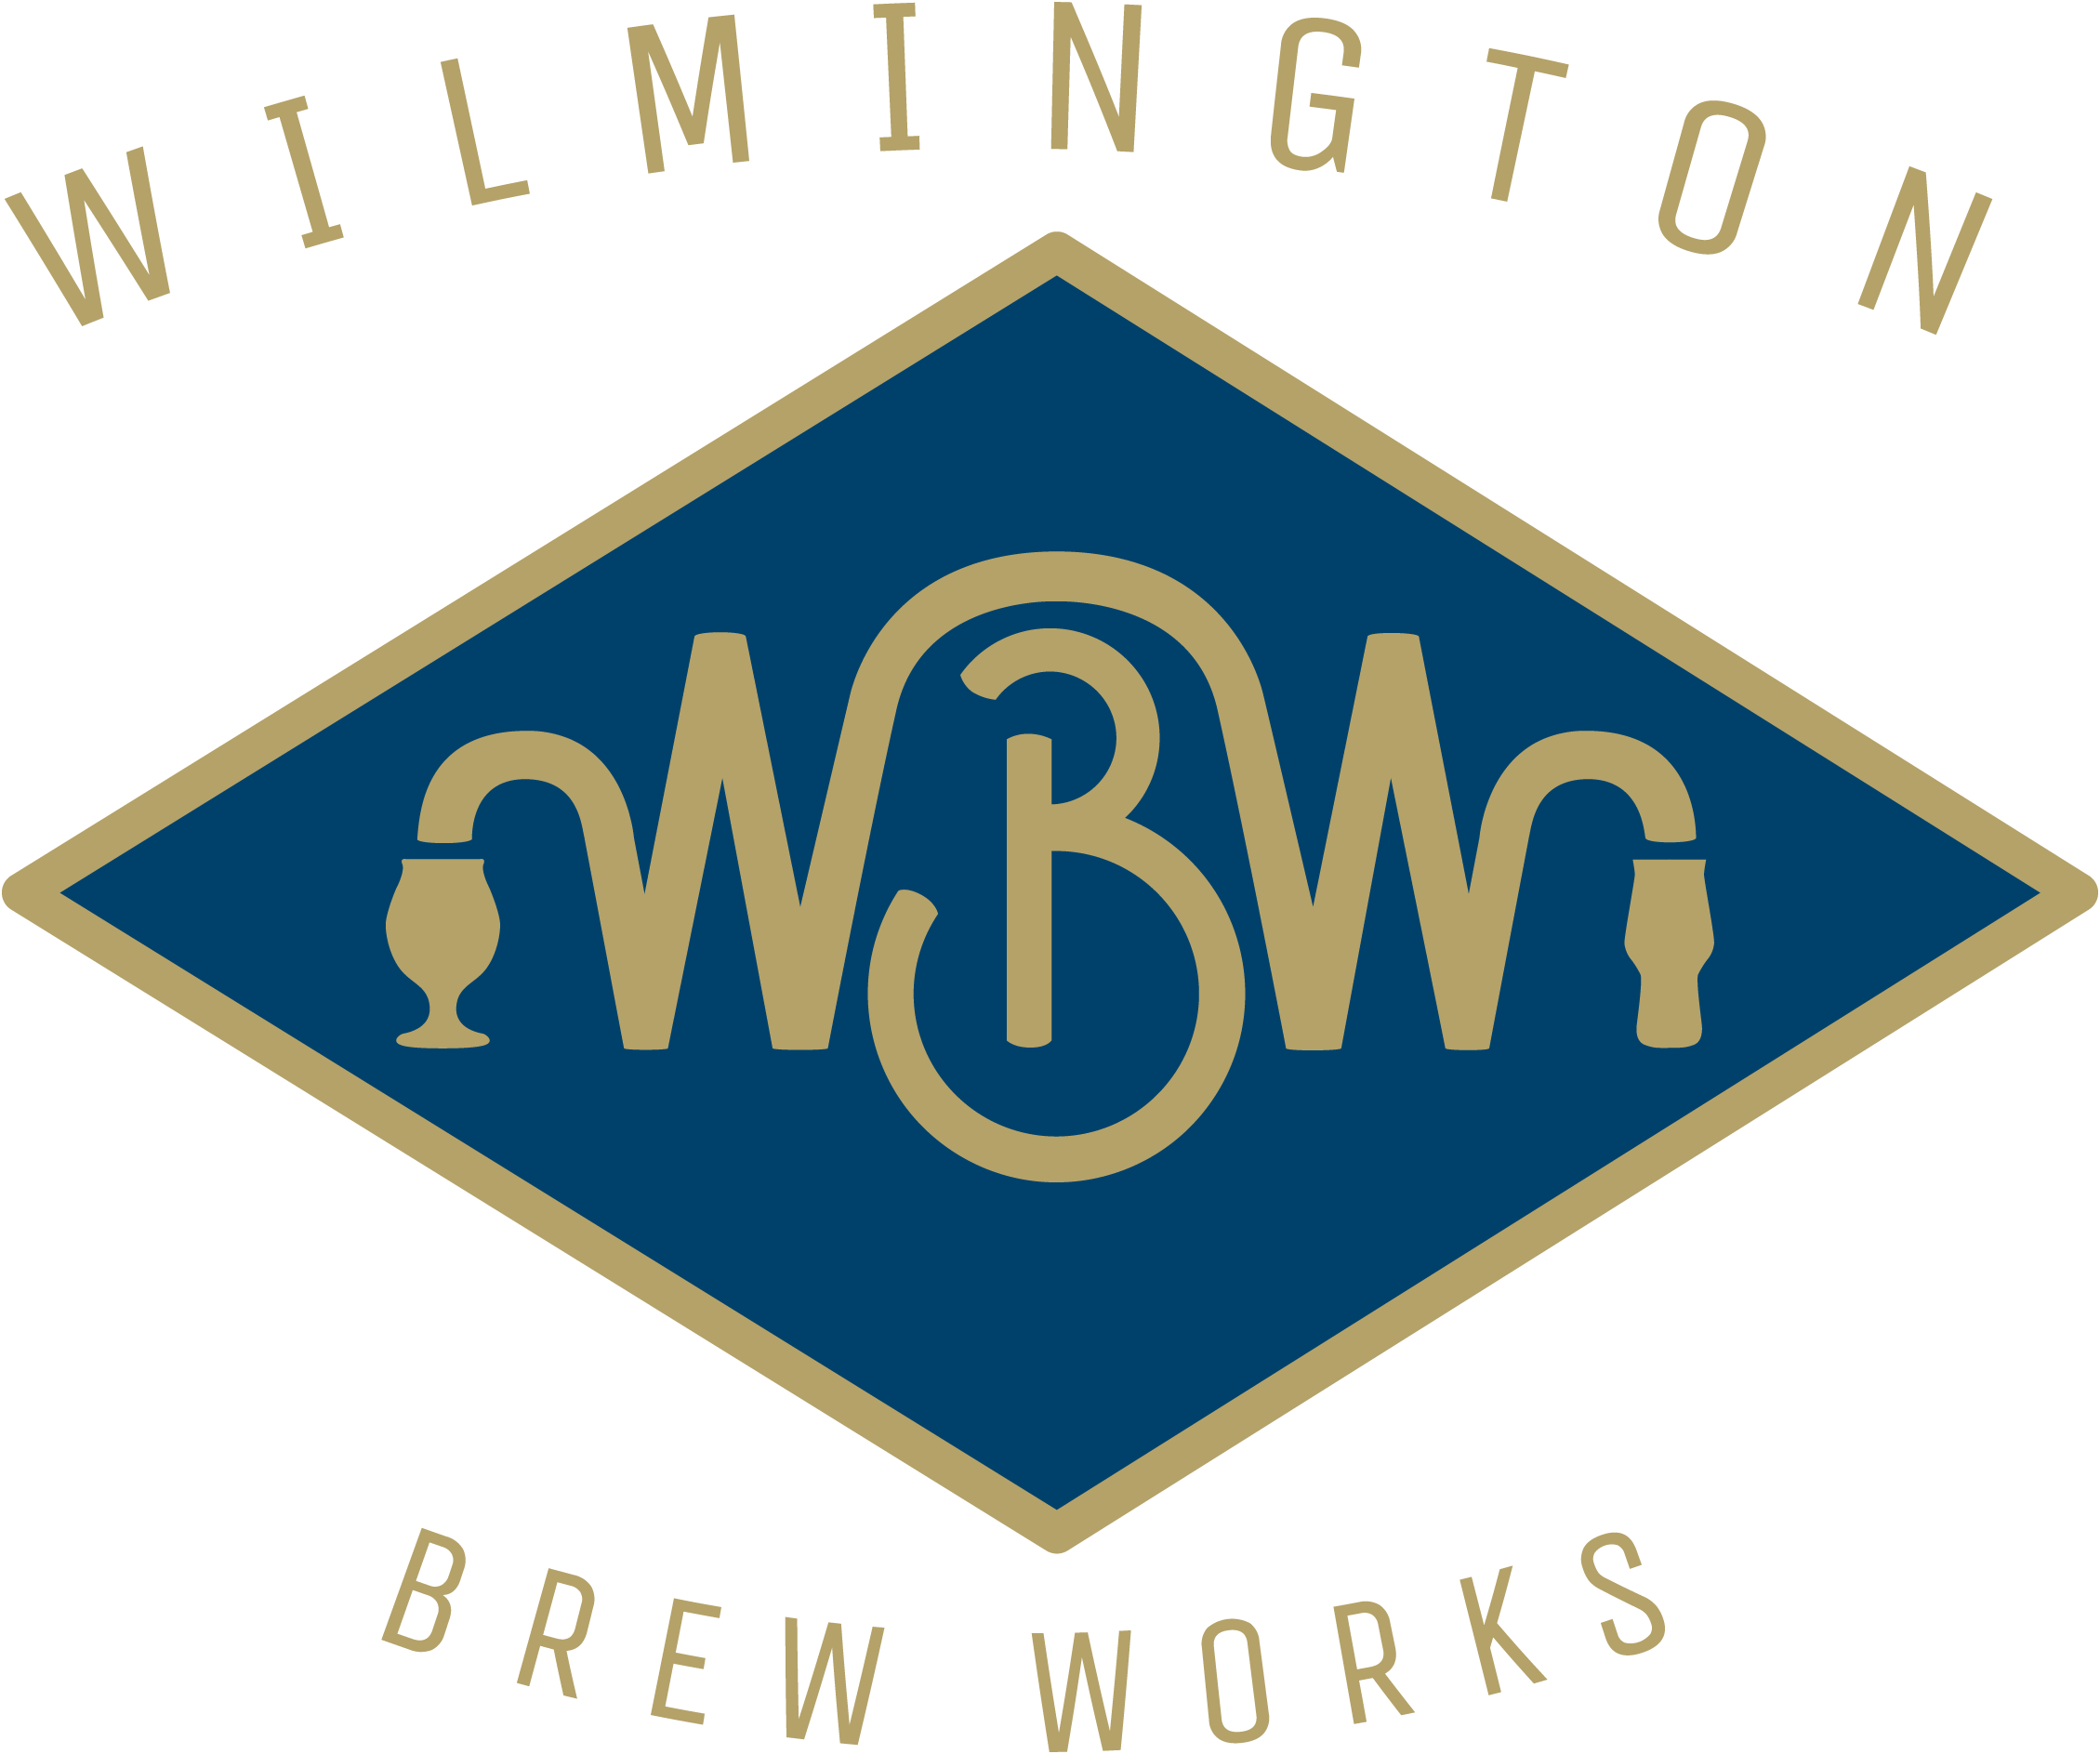 Wilmington Brew Works'family-friendly taproom